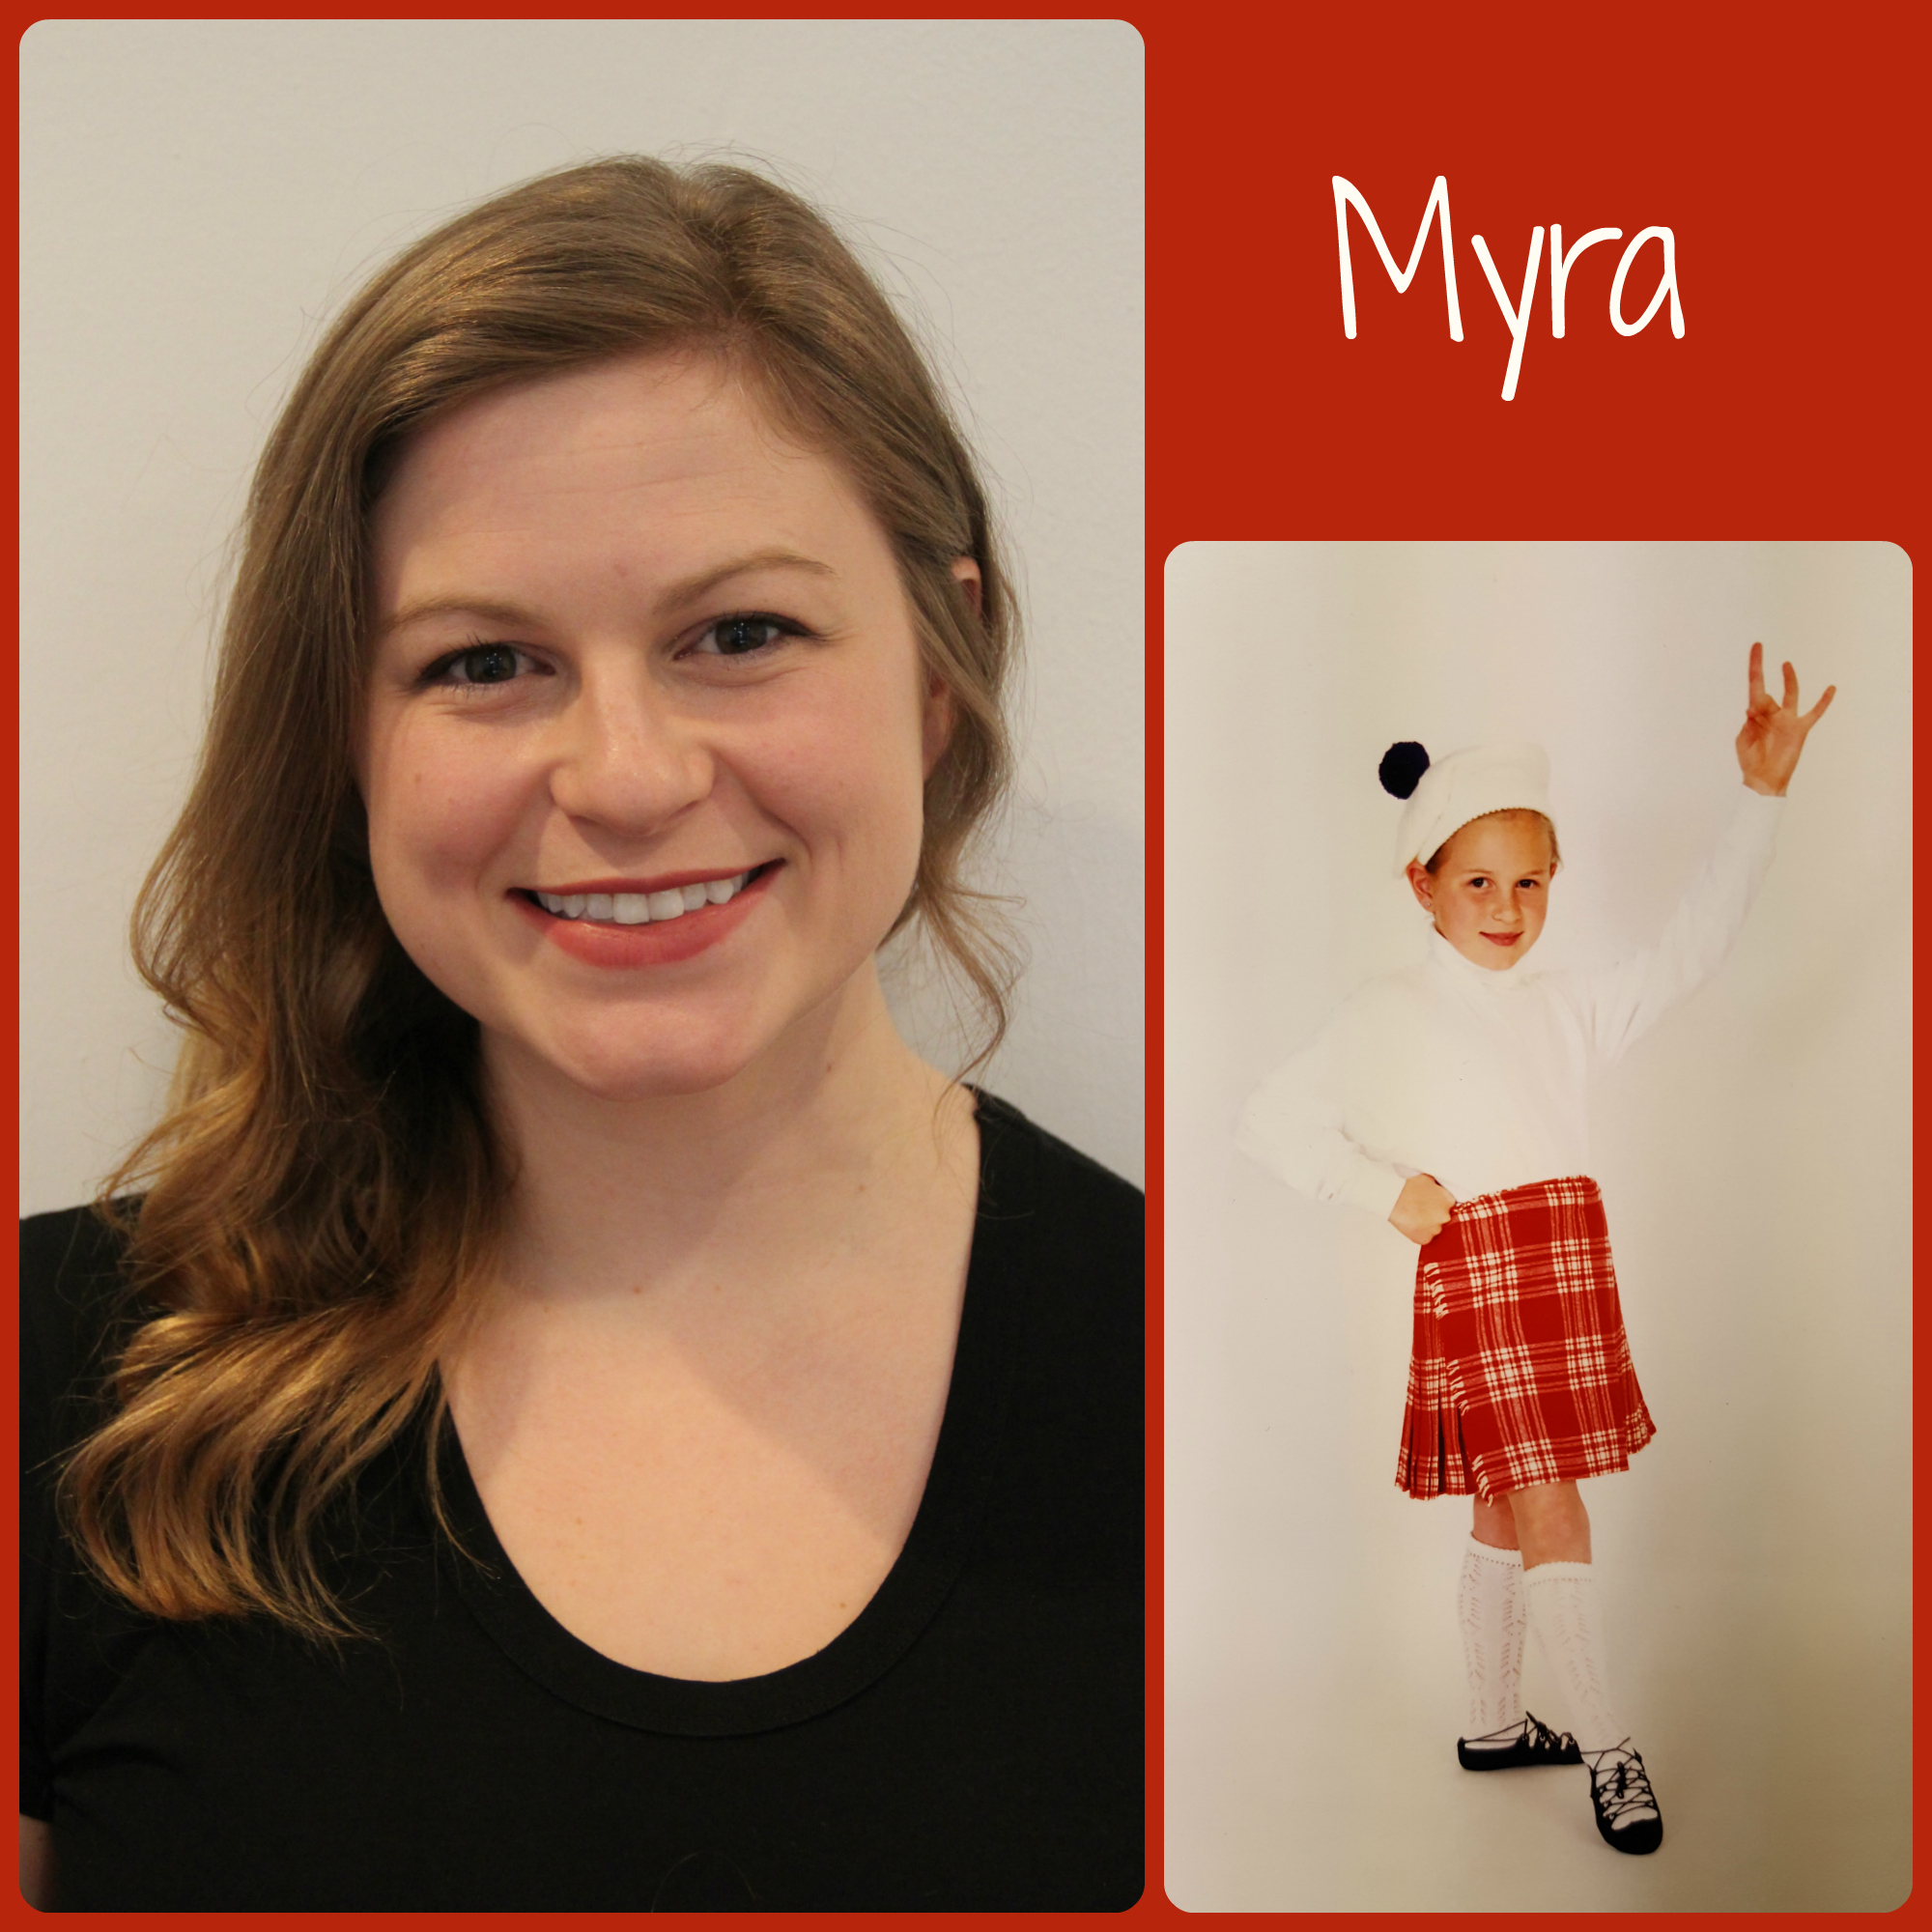 Myra   SoS Title: Choreographer/ Rehearsal Coordinator  Age Started Dancing: Age 3  Favorite Dance Memory: It is a tie between the Tartan Day Parades where SOS performs on 6th Ave with schools from all over, and travelling with a previous dance team to perform in tattoos with other dance schools from around the world.  Fun Fact: any time I need a fun fact I use the fact that I am a highland dancer and perform in the full kilt outfit.